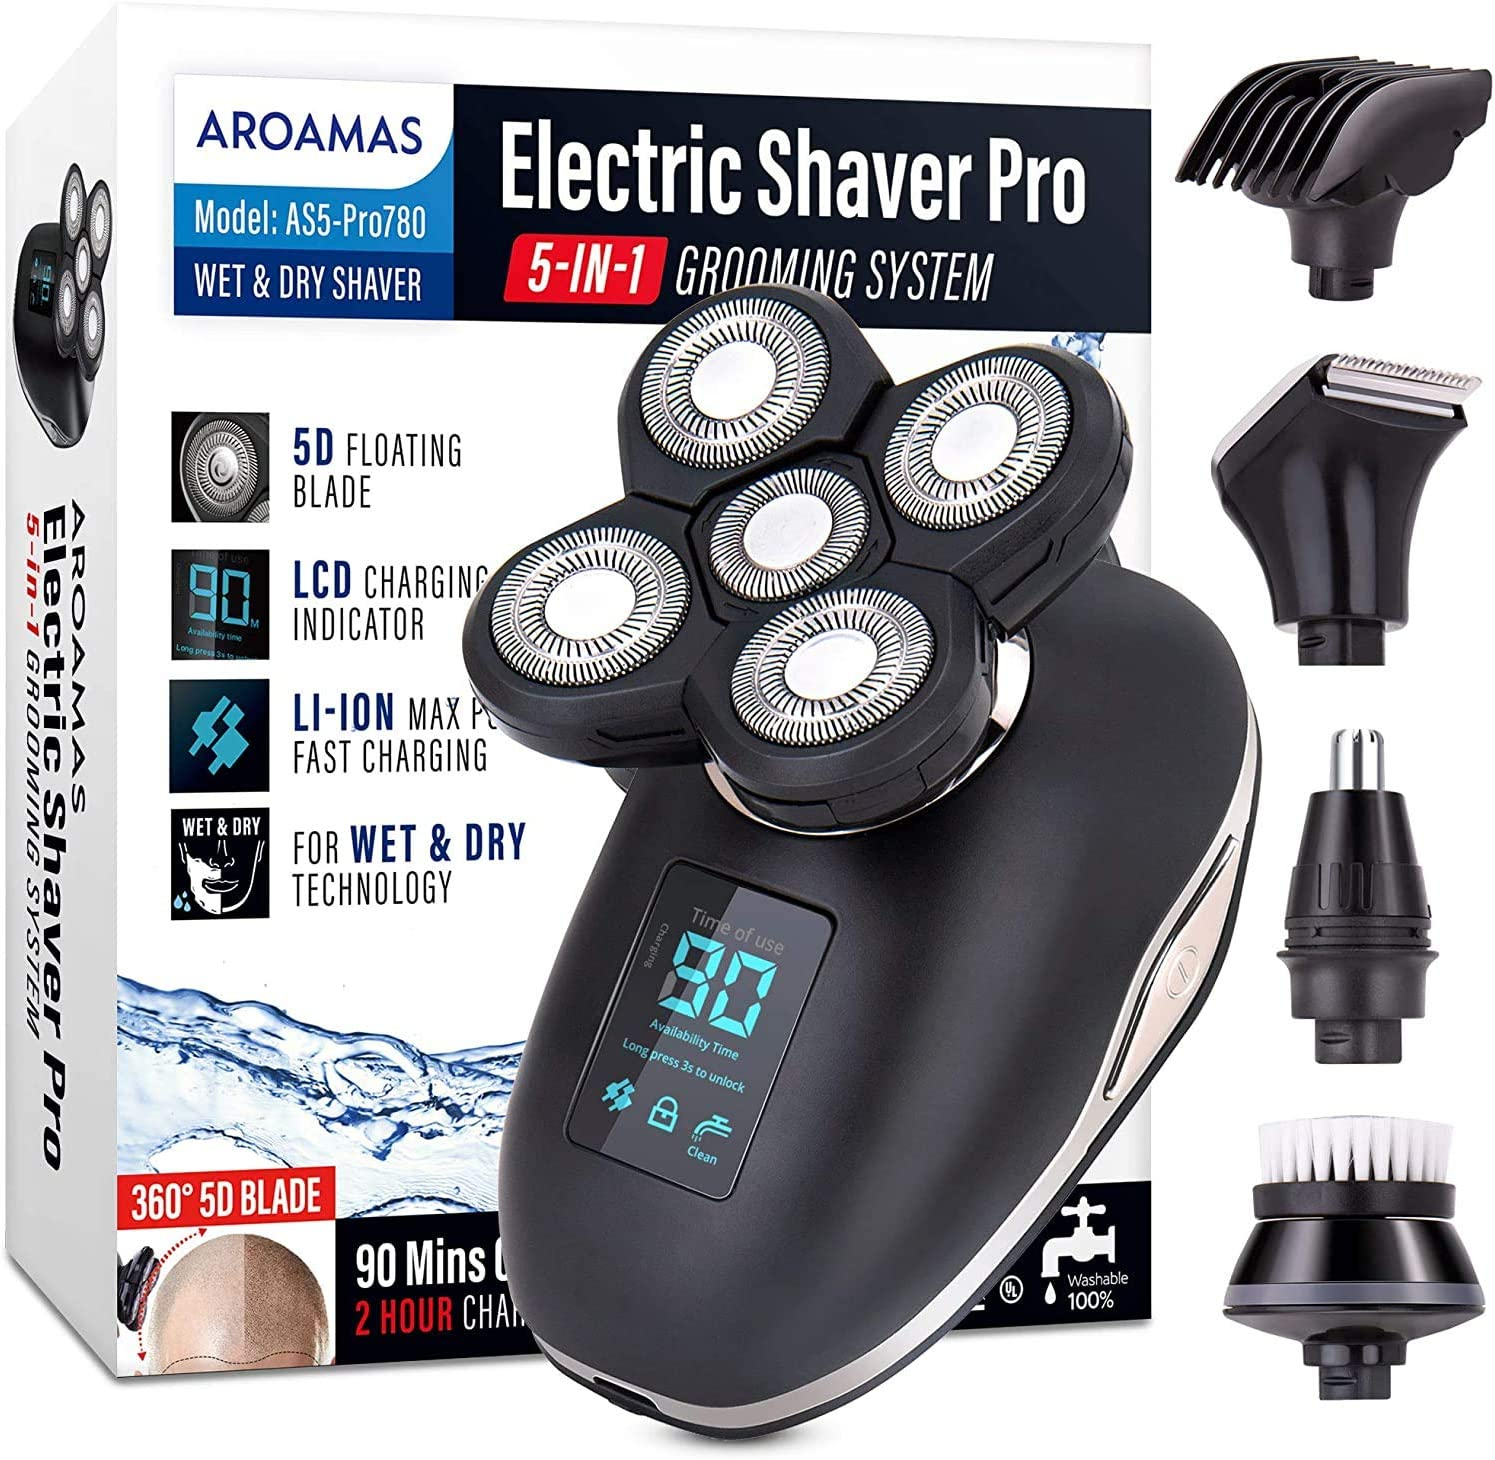 Aroamas Electric Razor for Men's Head and Beard Shaving - Waterproof, Rechargeable Electric Shaver for Bald Men and Beard Trimmer - Wet/Dry with 5-in-1 Grooming Kit [LED Display]